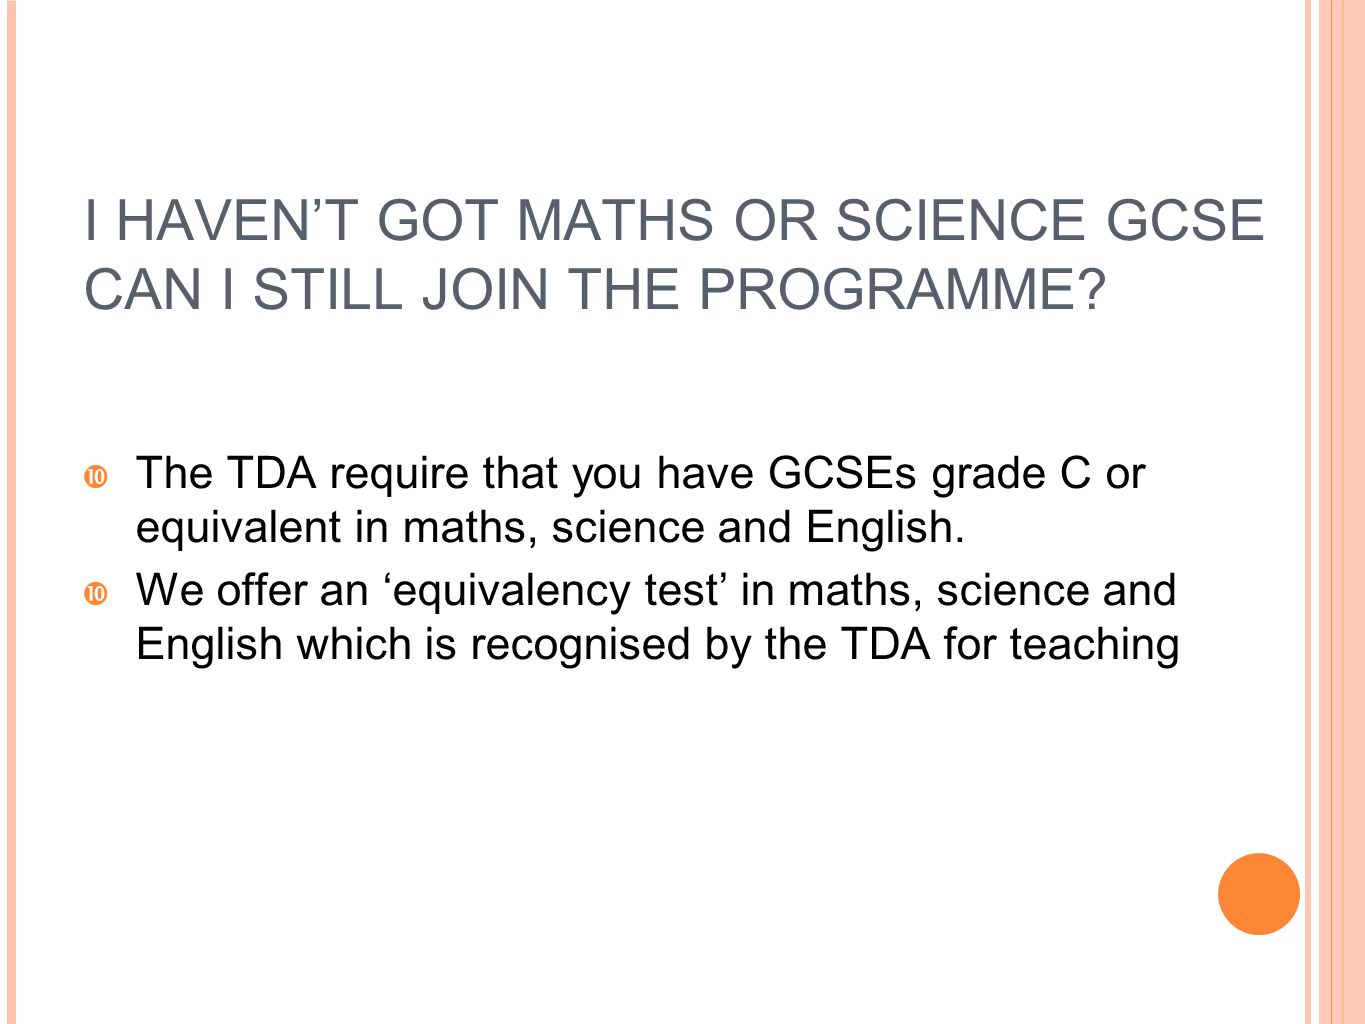 I HAVEN'T GOT MATHS OR SCIENCE GCSE CAN I STILL JOIN THE PROGRAMME